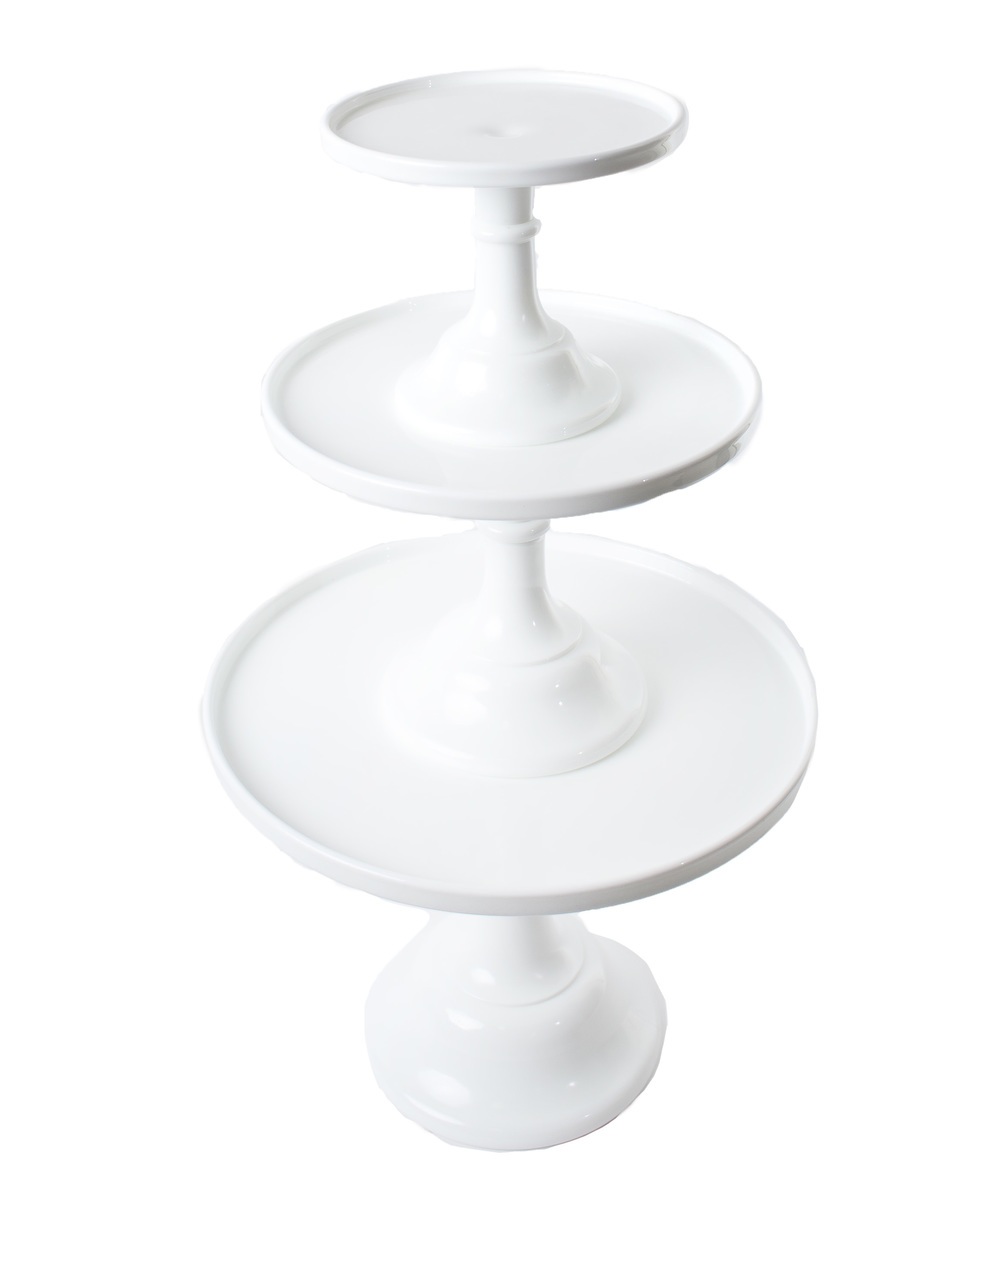 'Milk' Cake Stands (Shown Stacked)